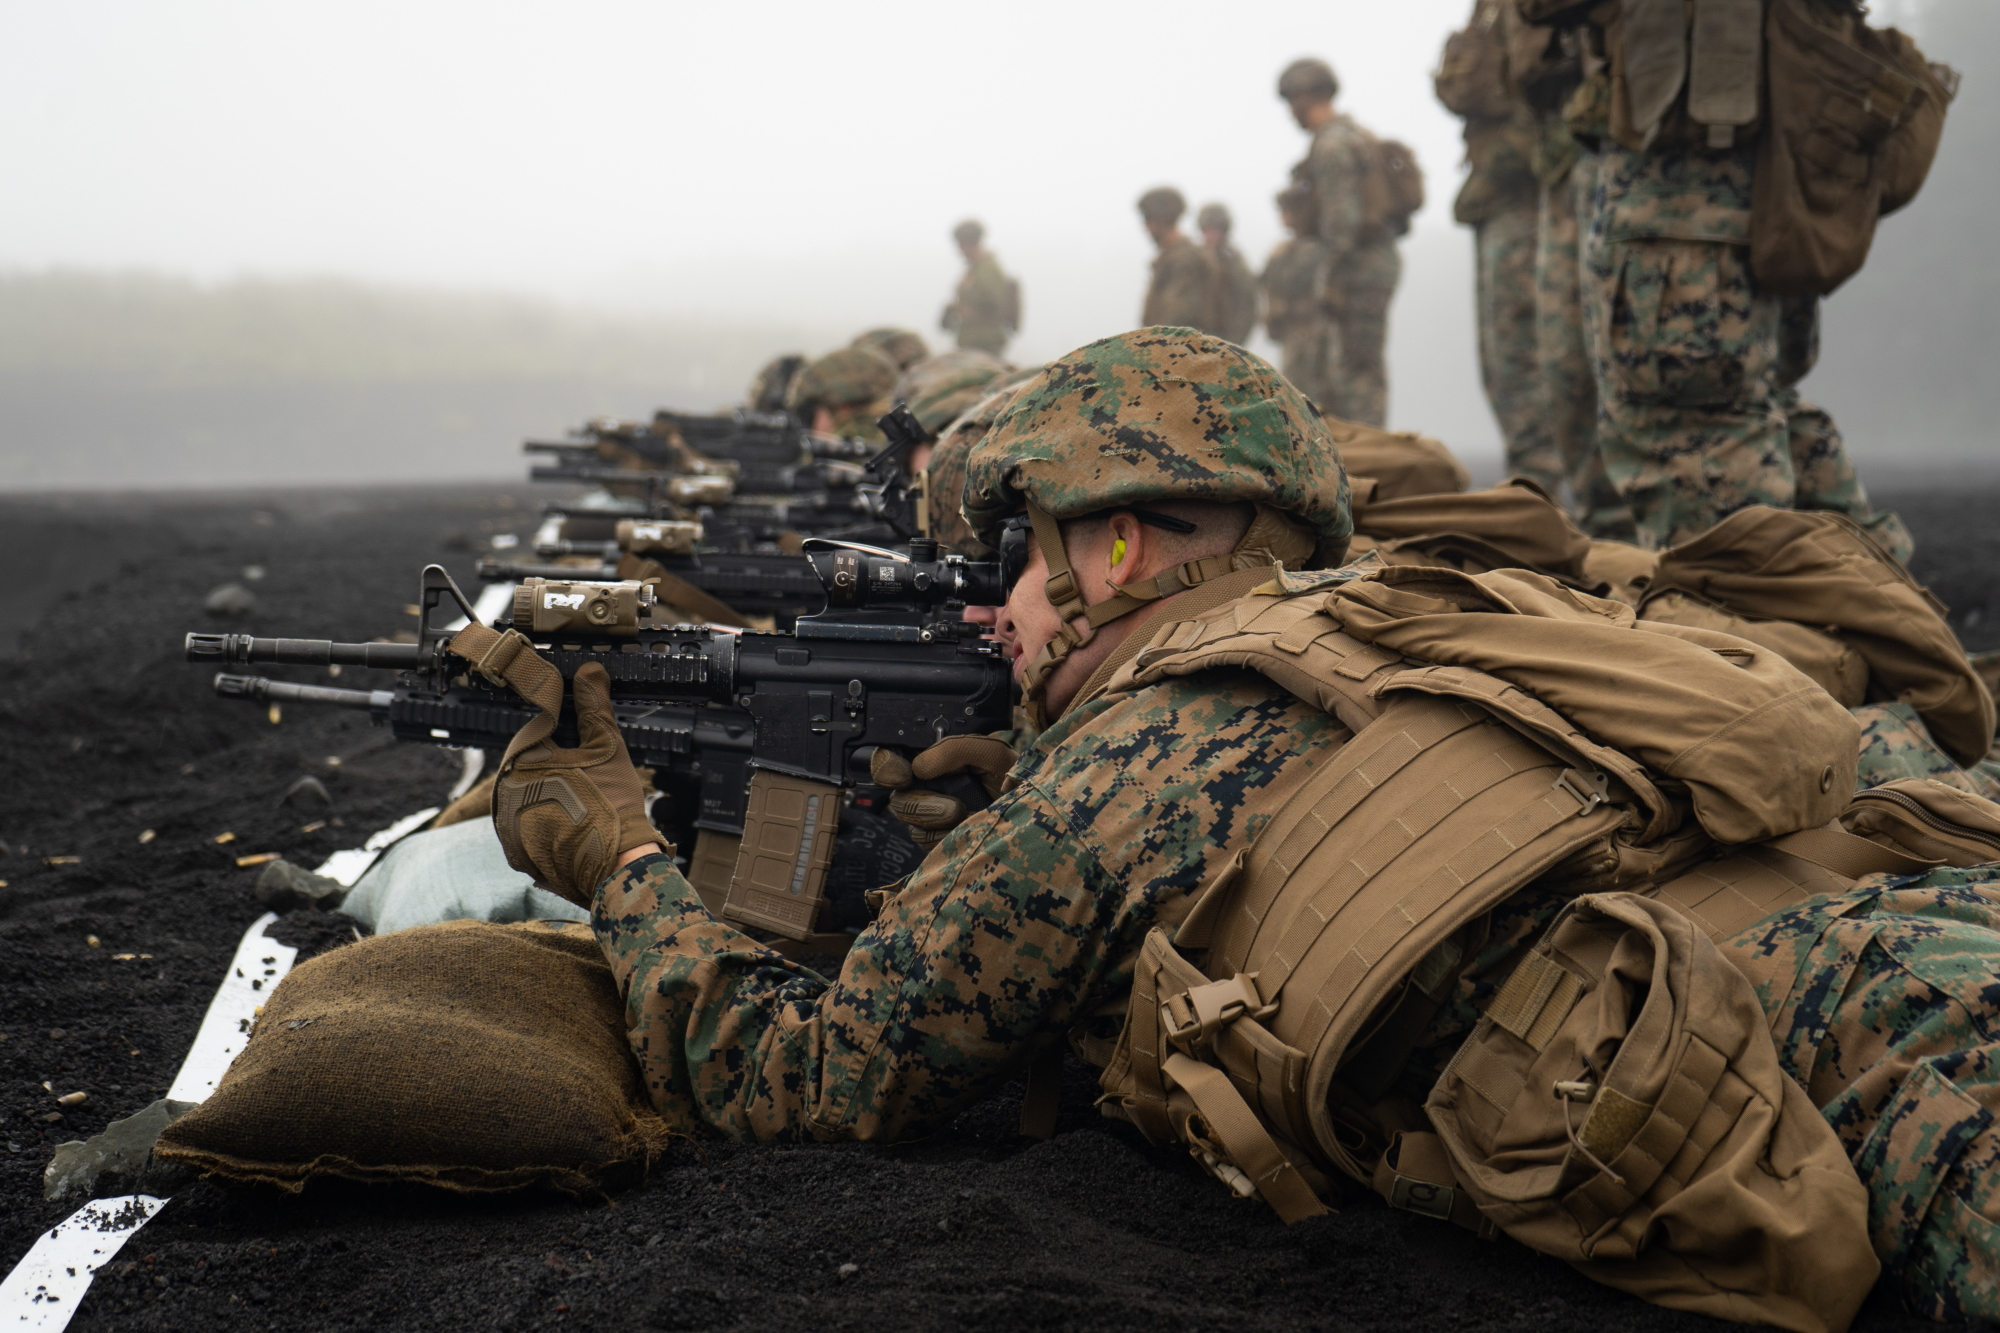 Marine Corps 1st Lt. Zachary Scalzo participates in a combat marksmanship range during exercise Fuji Viper 20.1 at Camp Fuji, Japan, Oct. 16, 2019. (Cpl. Timothy Hernandez/Marine Corps)